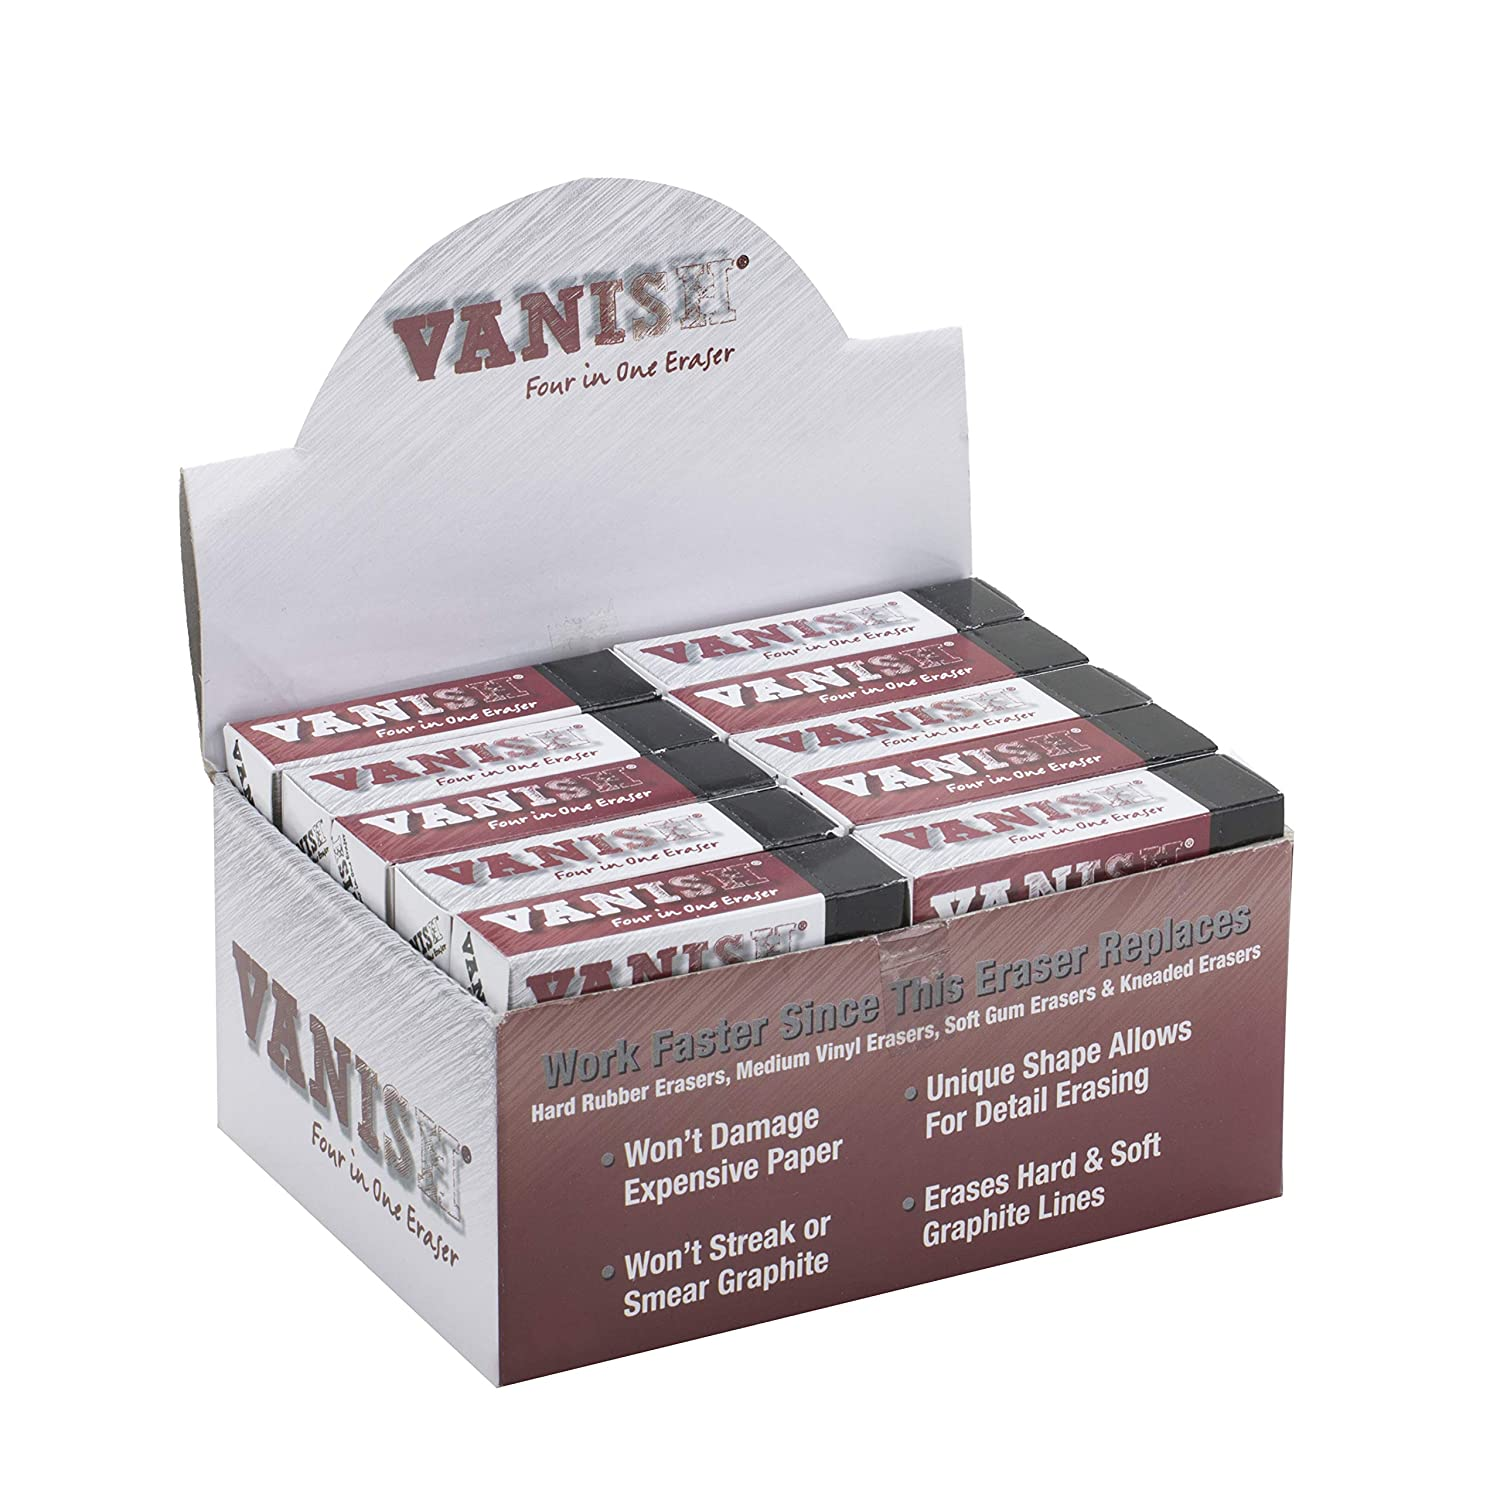 Vanish 4-in-1 Artist Eraser Replaces Gum Rubber Vinyl and Kneaded Erasers 4 Pack